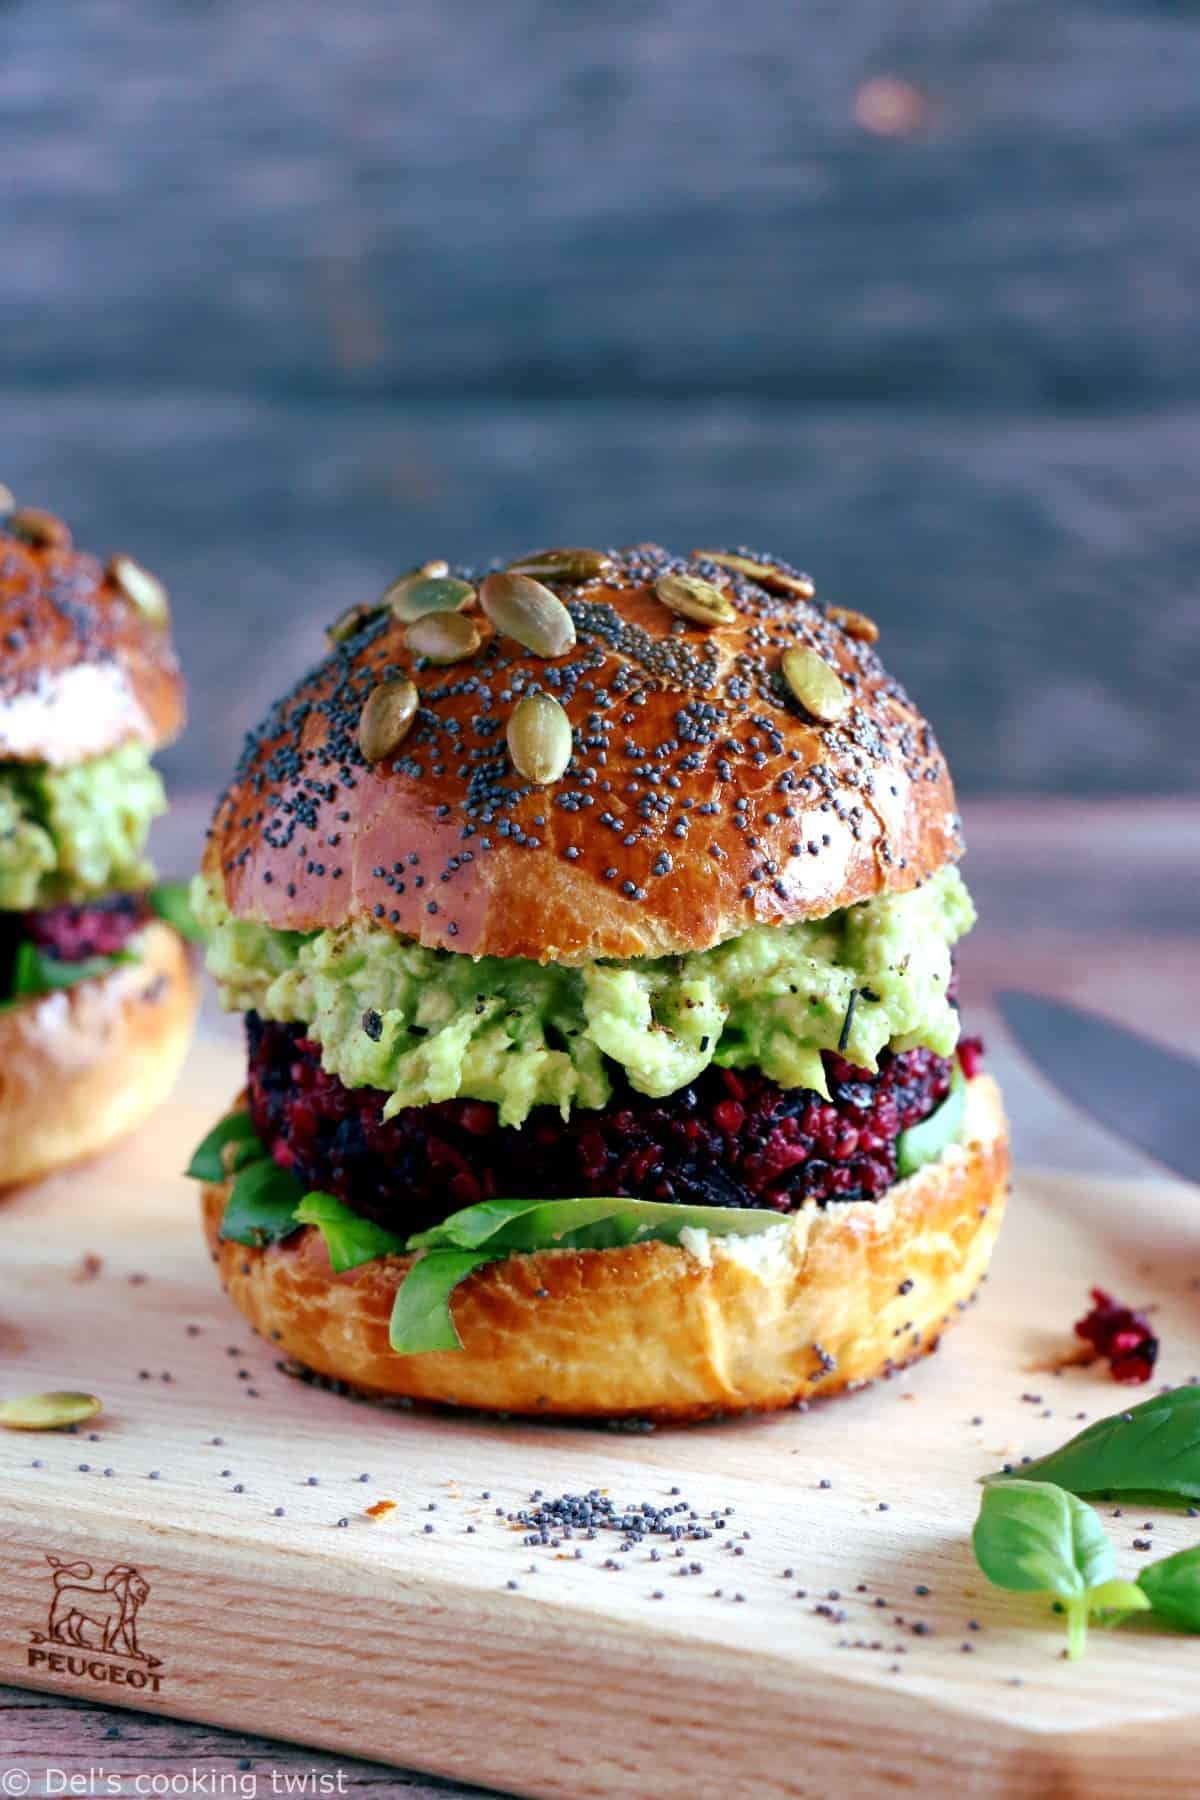 Vegetarian Beet Quinoa Burger. Vegetarian Beet Quinoa Burger. Scrumptious vegetarian beet quinoa burger with feta cheese, avocado dip and delicious homemade brioche burger buns. Simply the best!